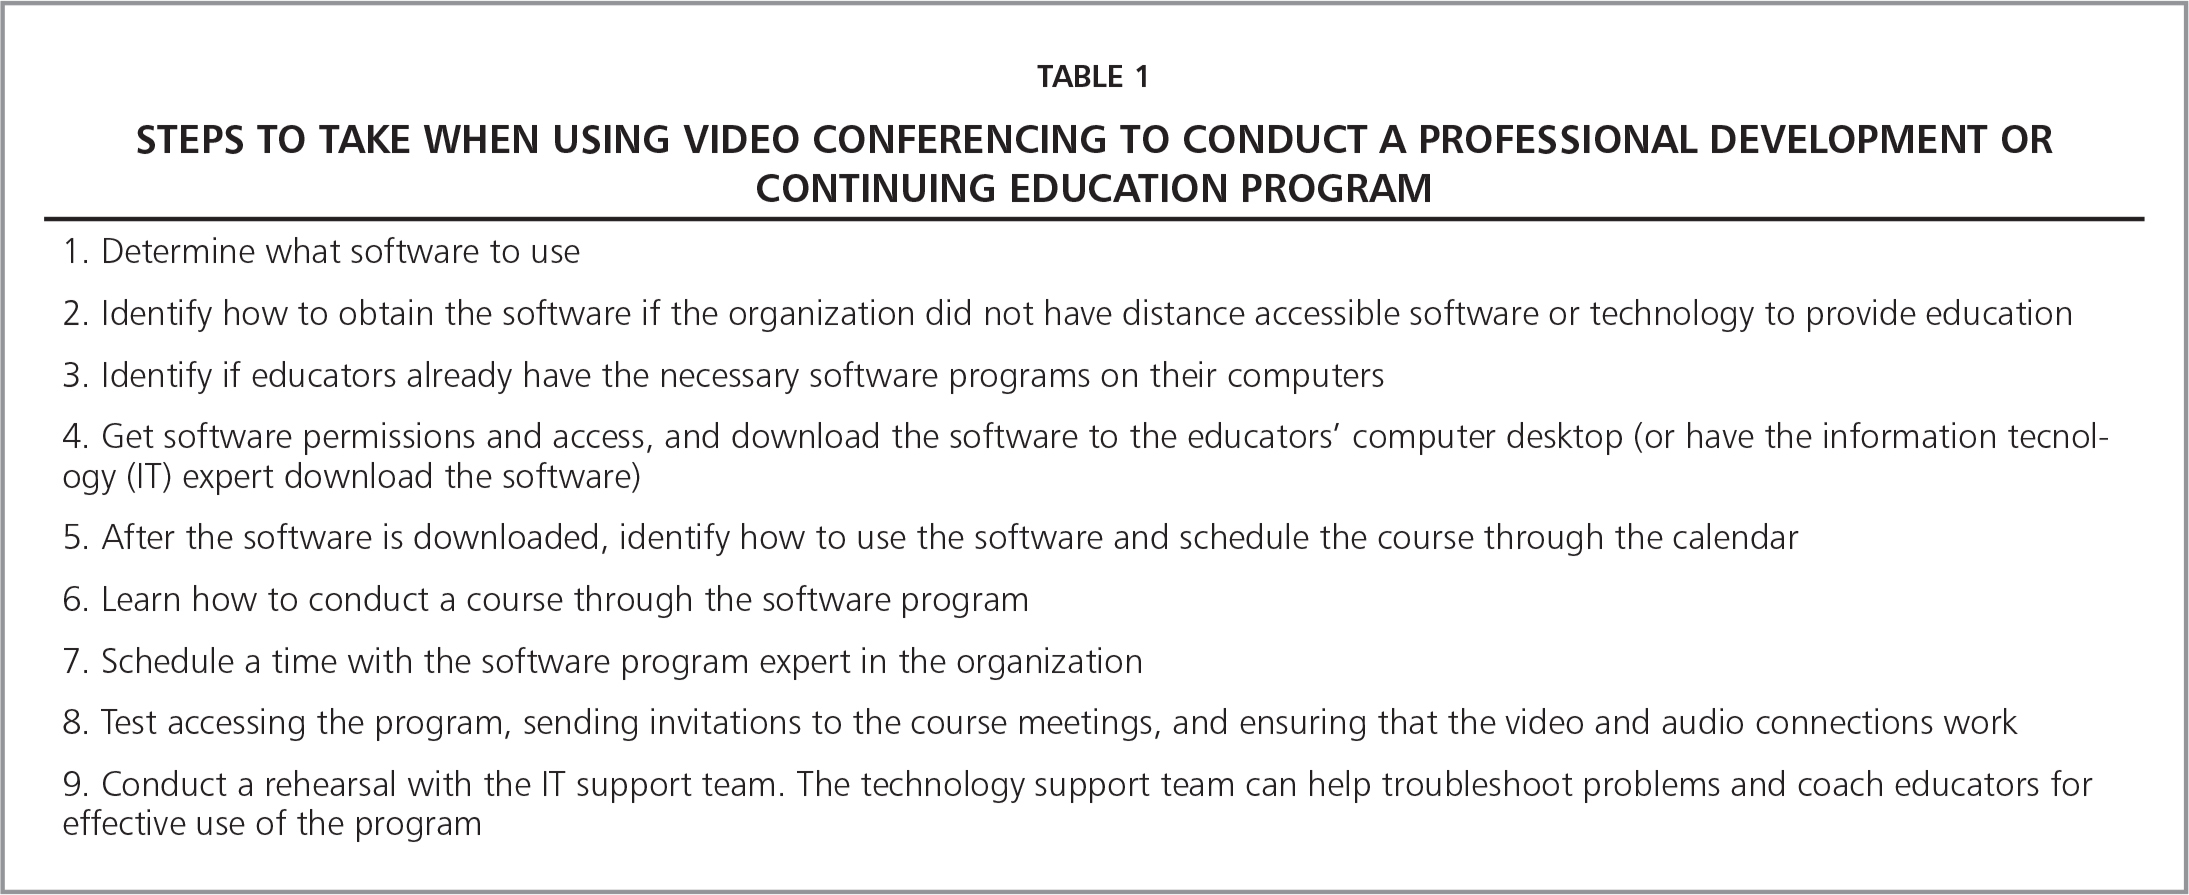 Steps to Take When Using Video Conferencing to Conduct a Professional Development or Continuing Education Program